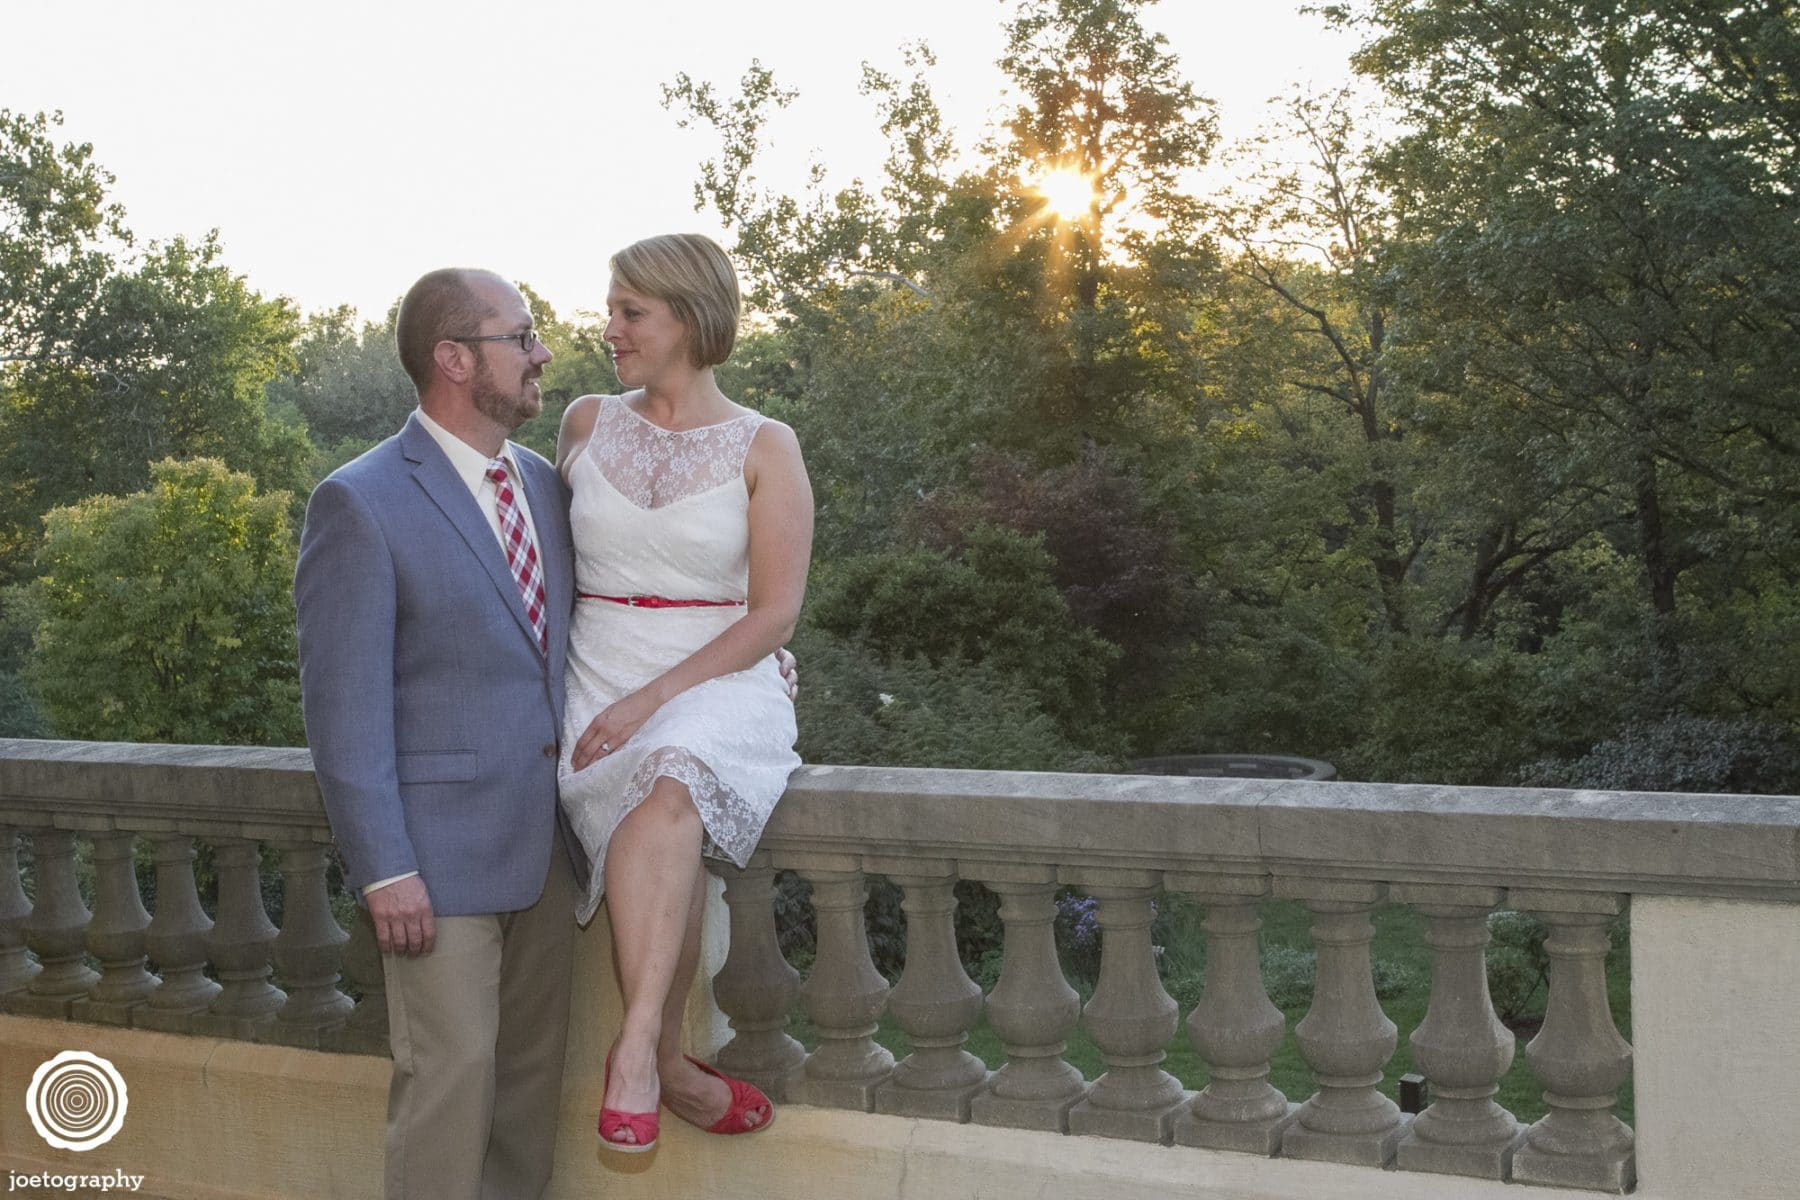 jess-rob-engagement-photos-indianapolis-museum-art-74